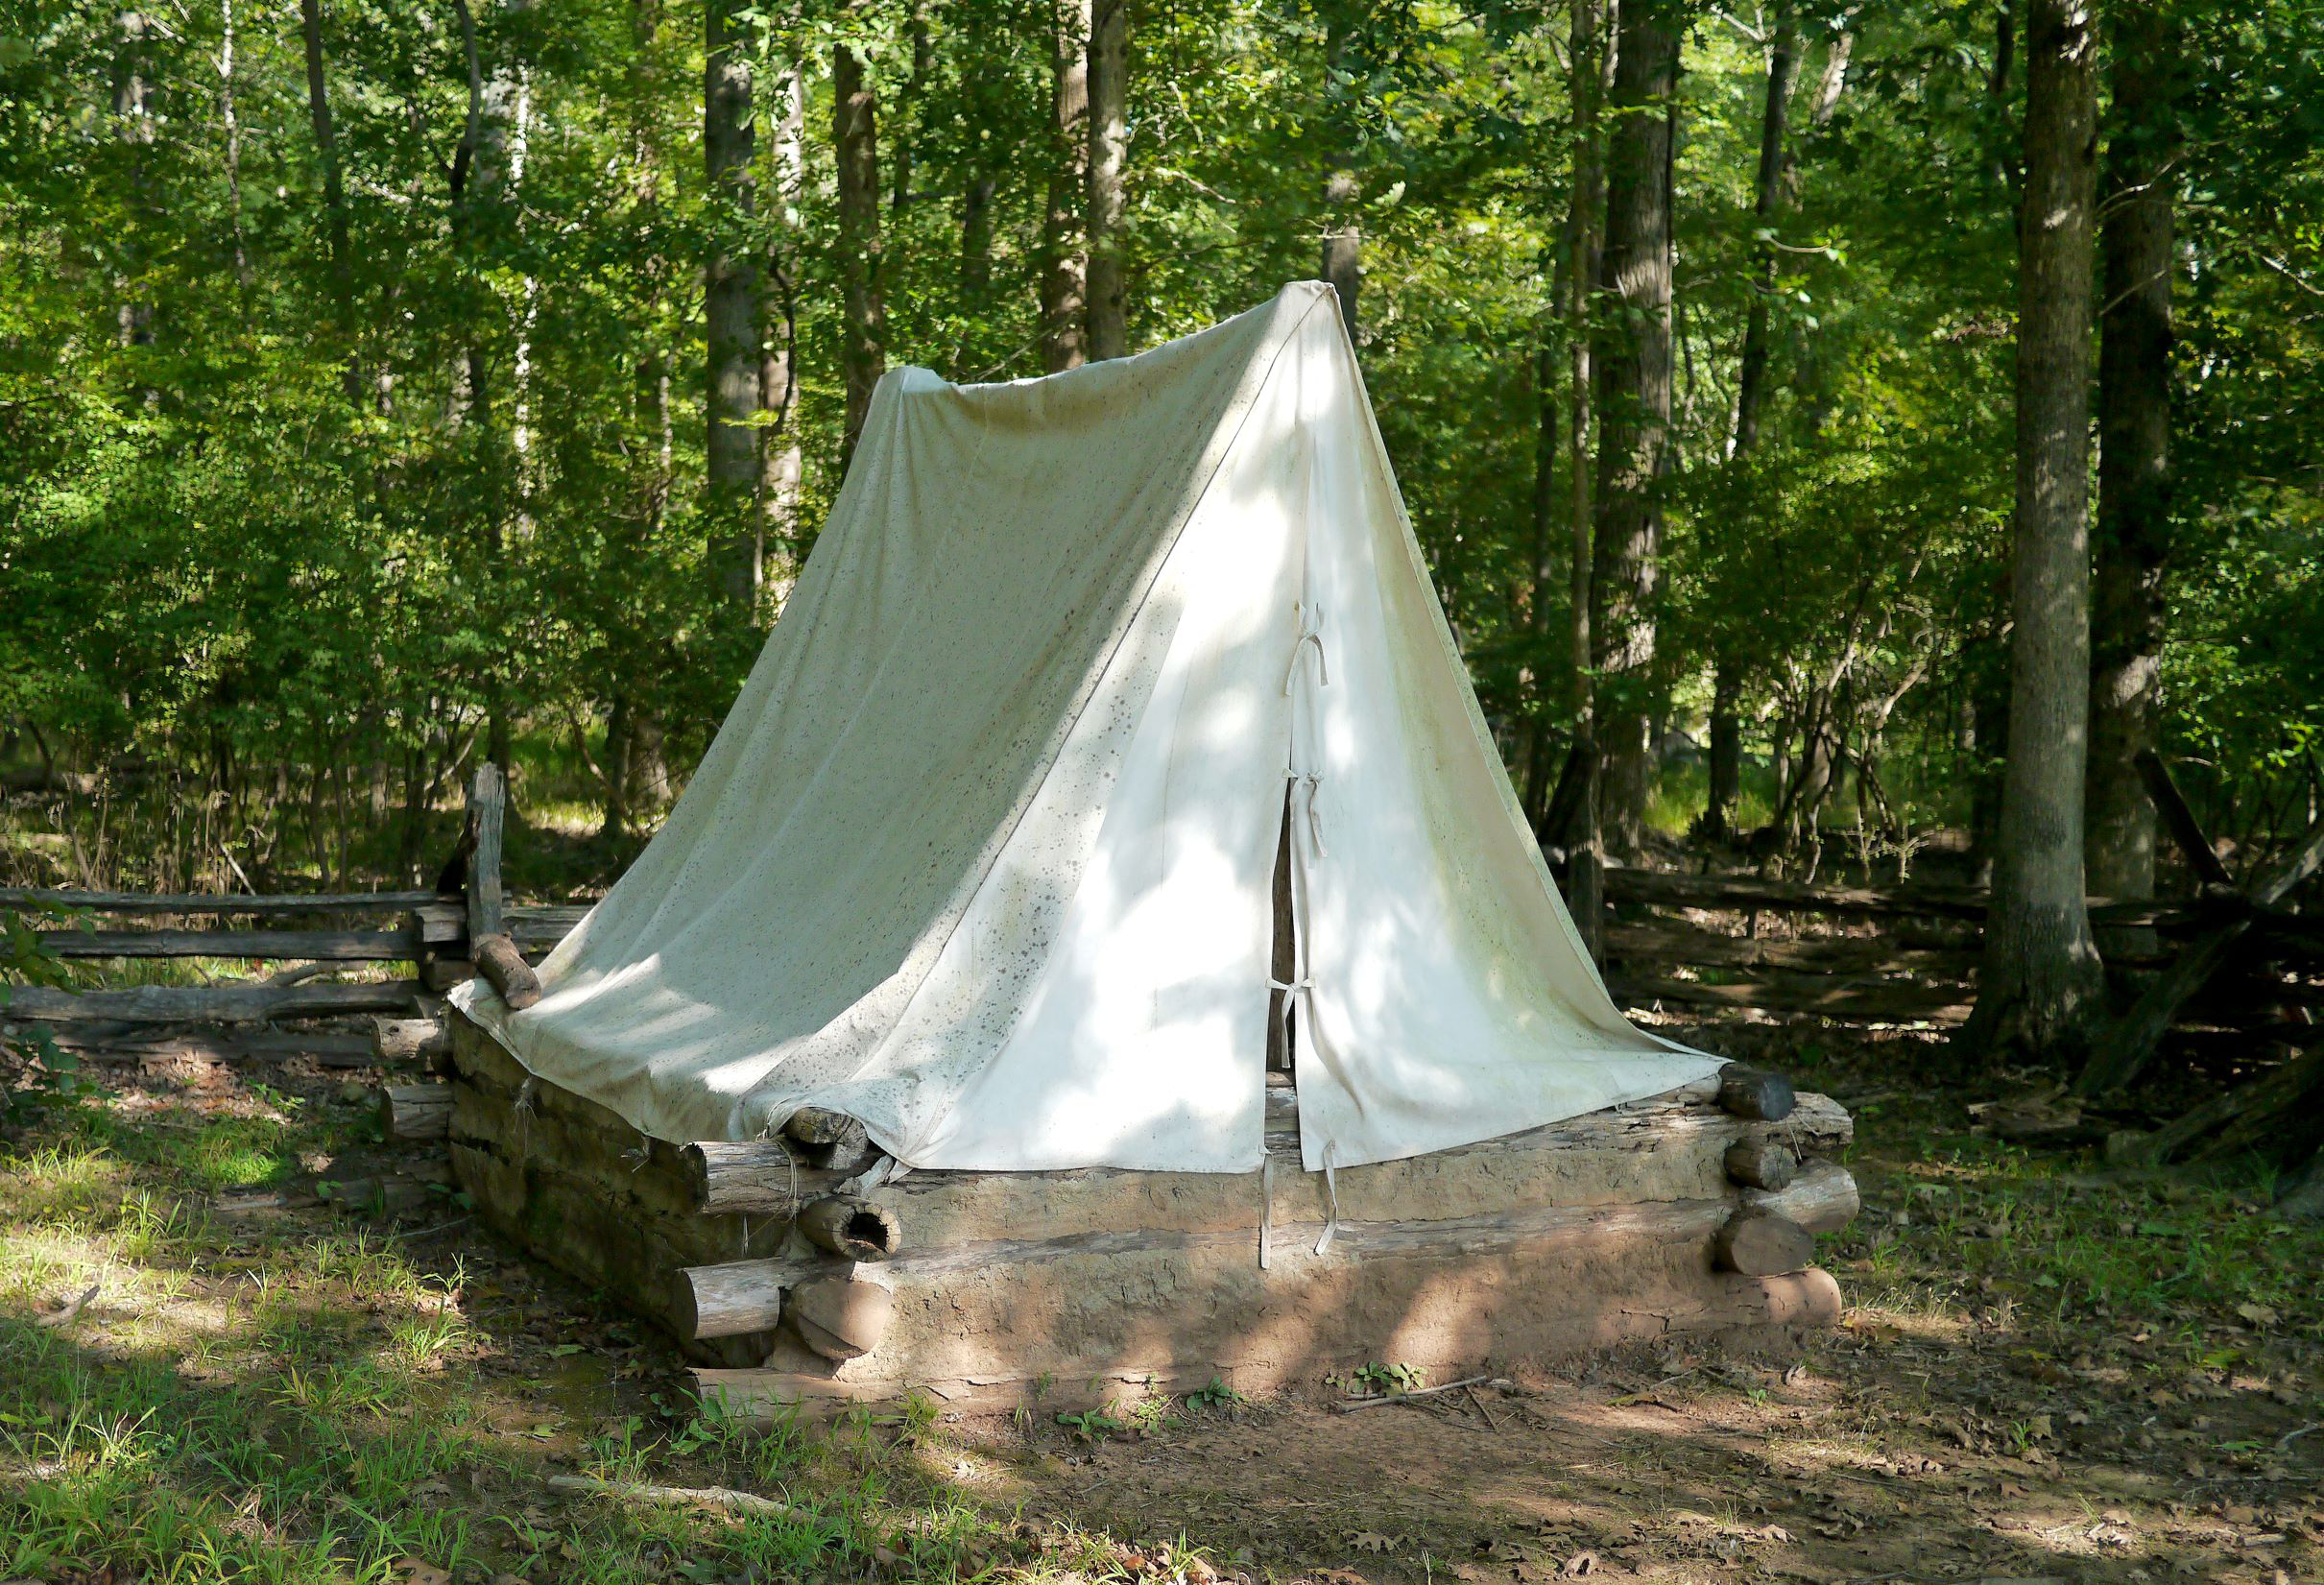 Union Civil War Field Shelter